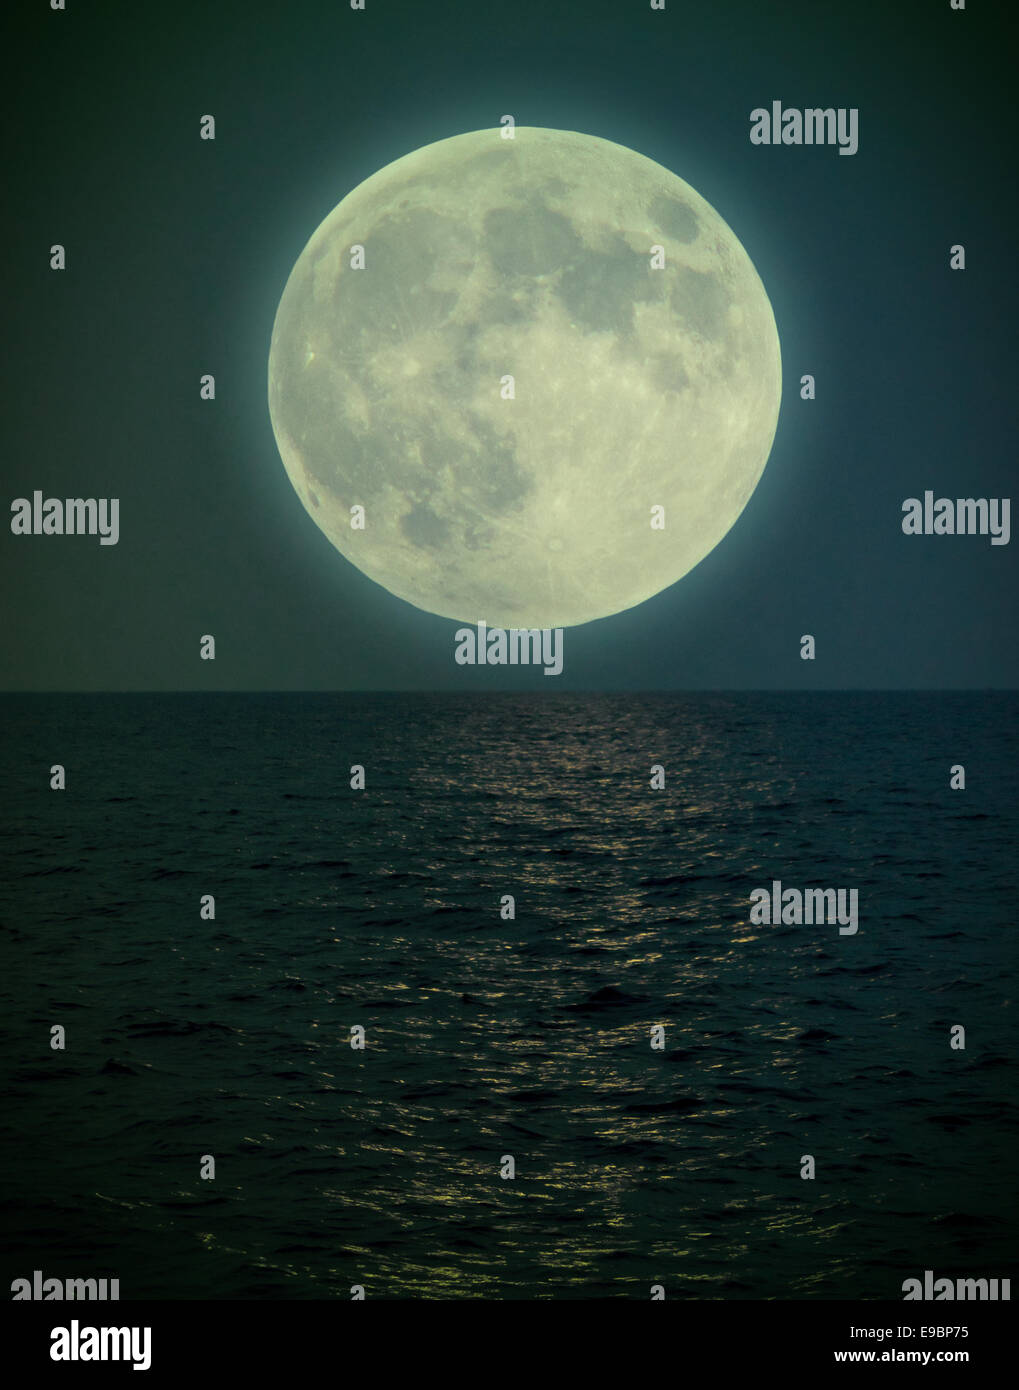 Halloween full super moon under the see getting the light on water - Stock Image